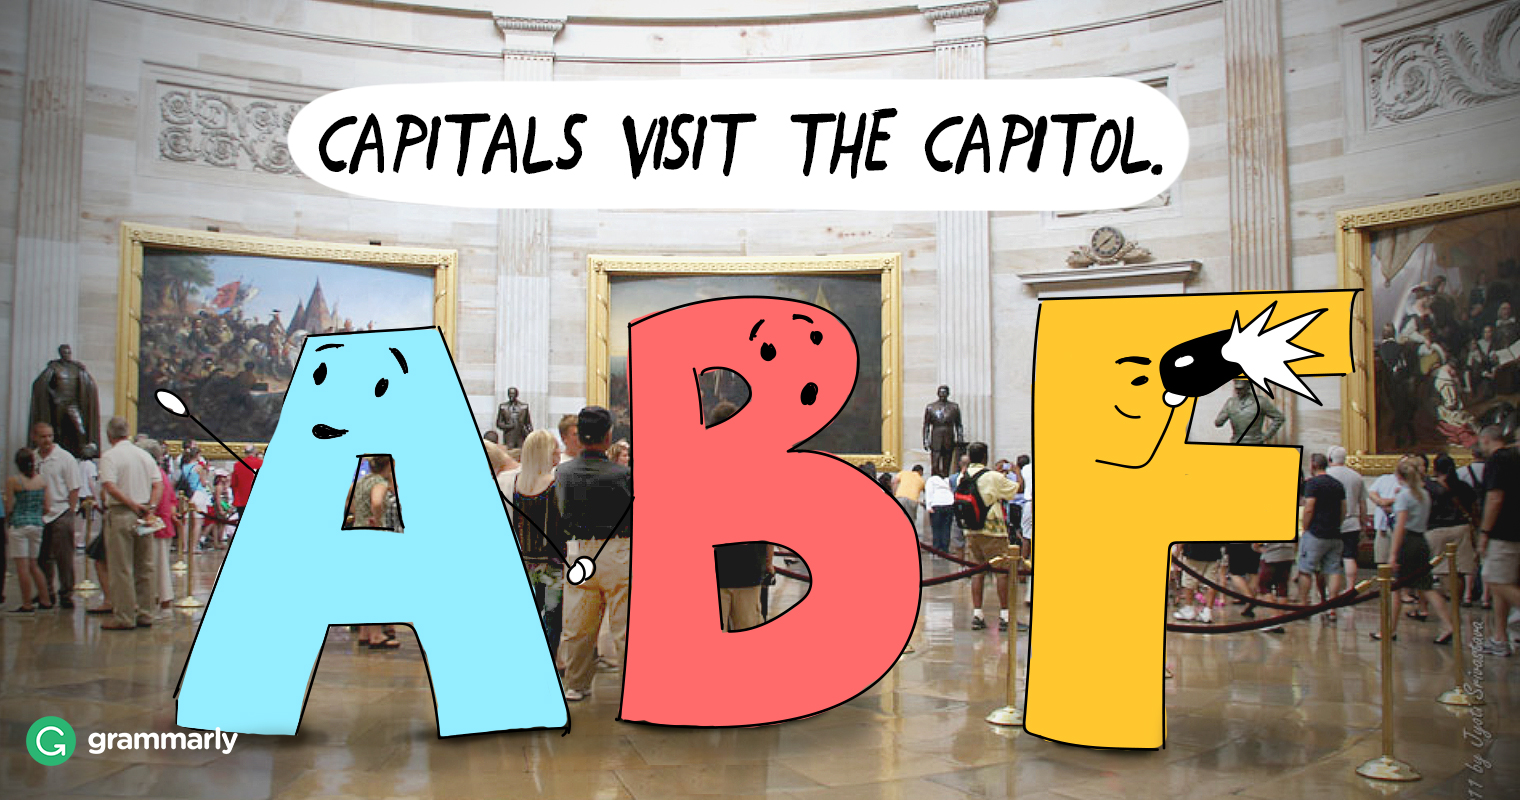 Capital vs. Capitol image